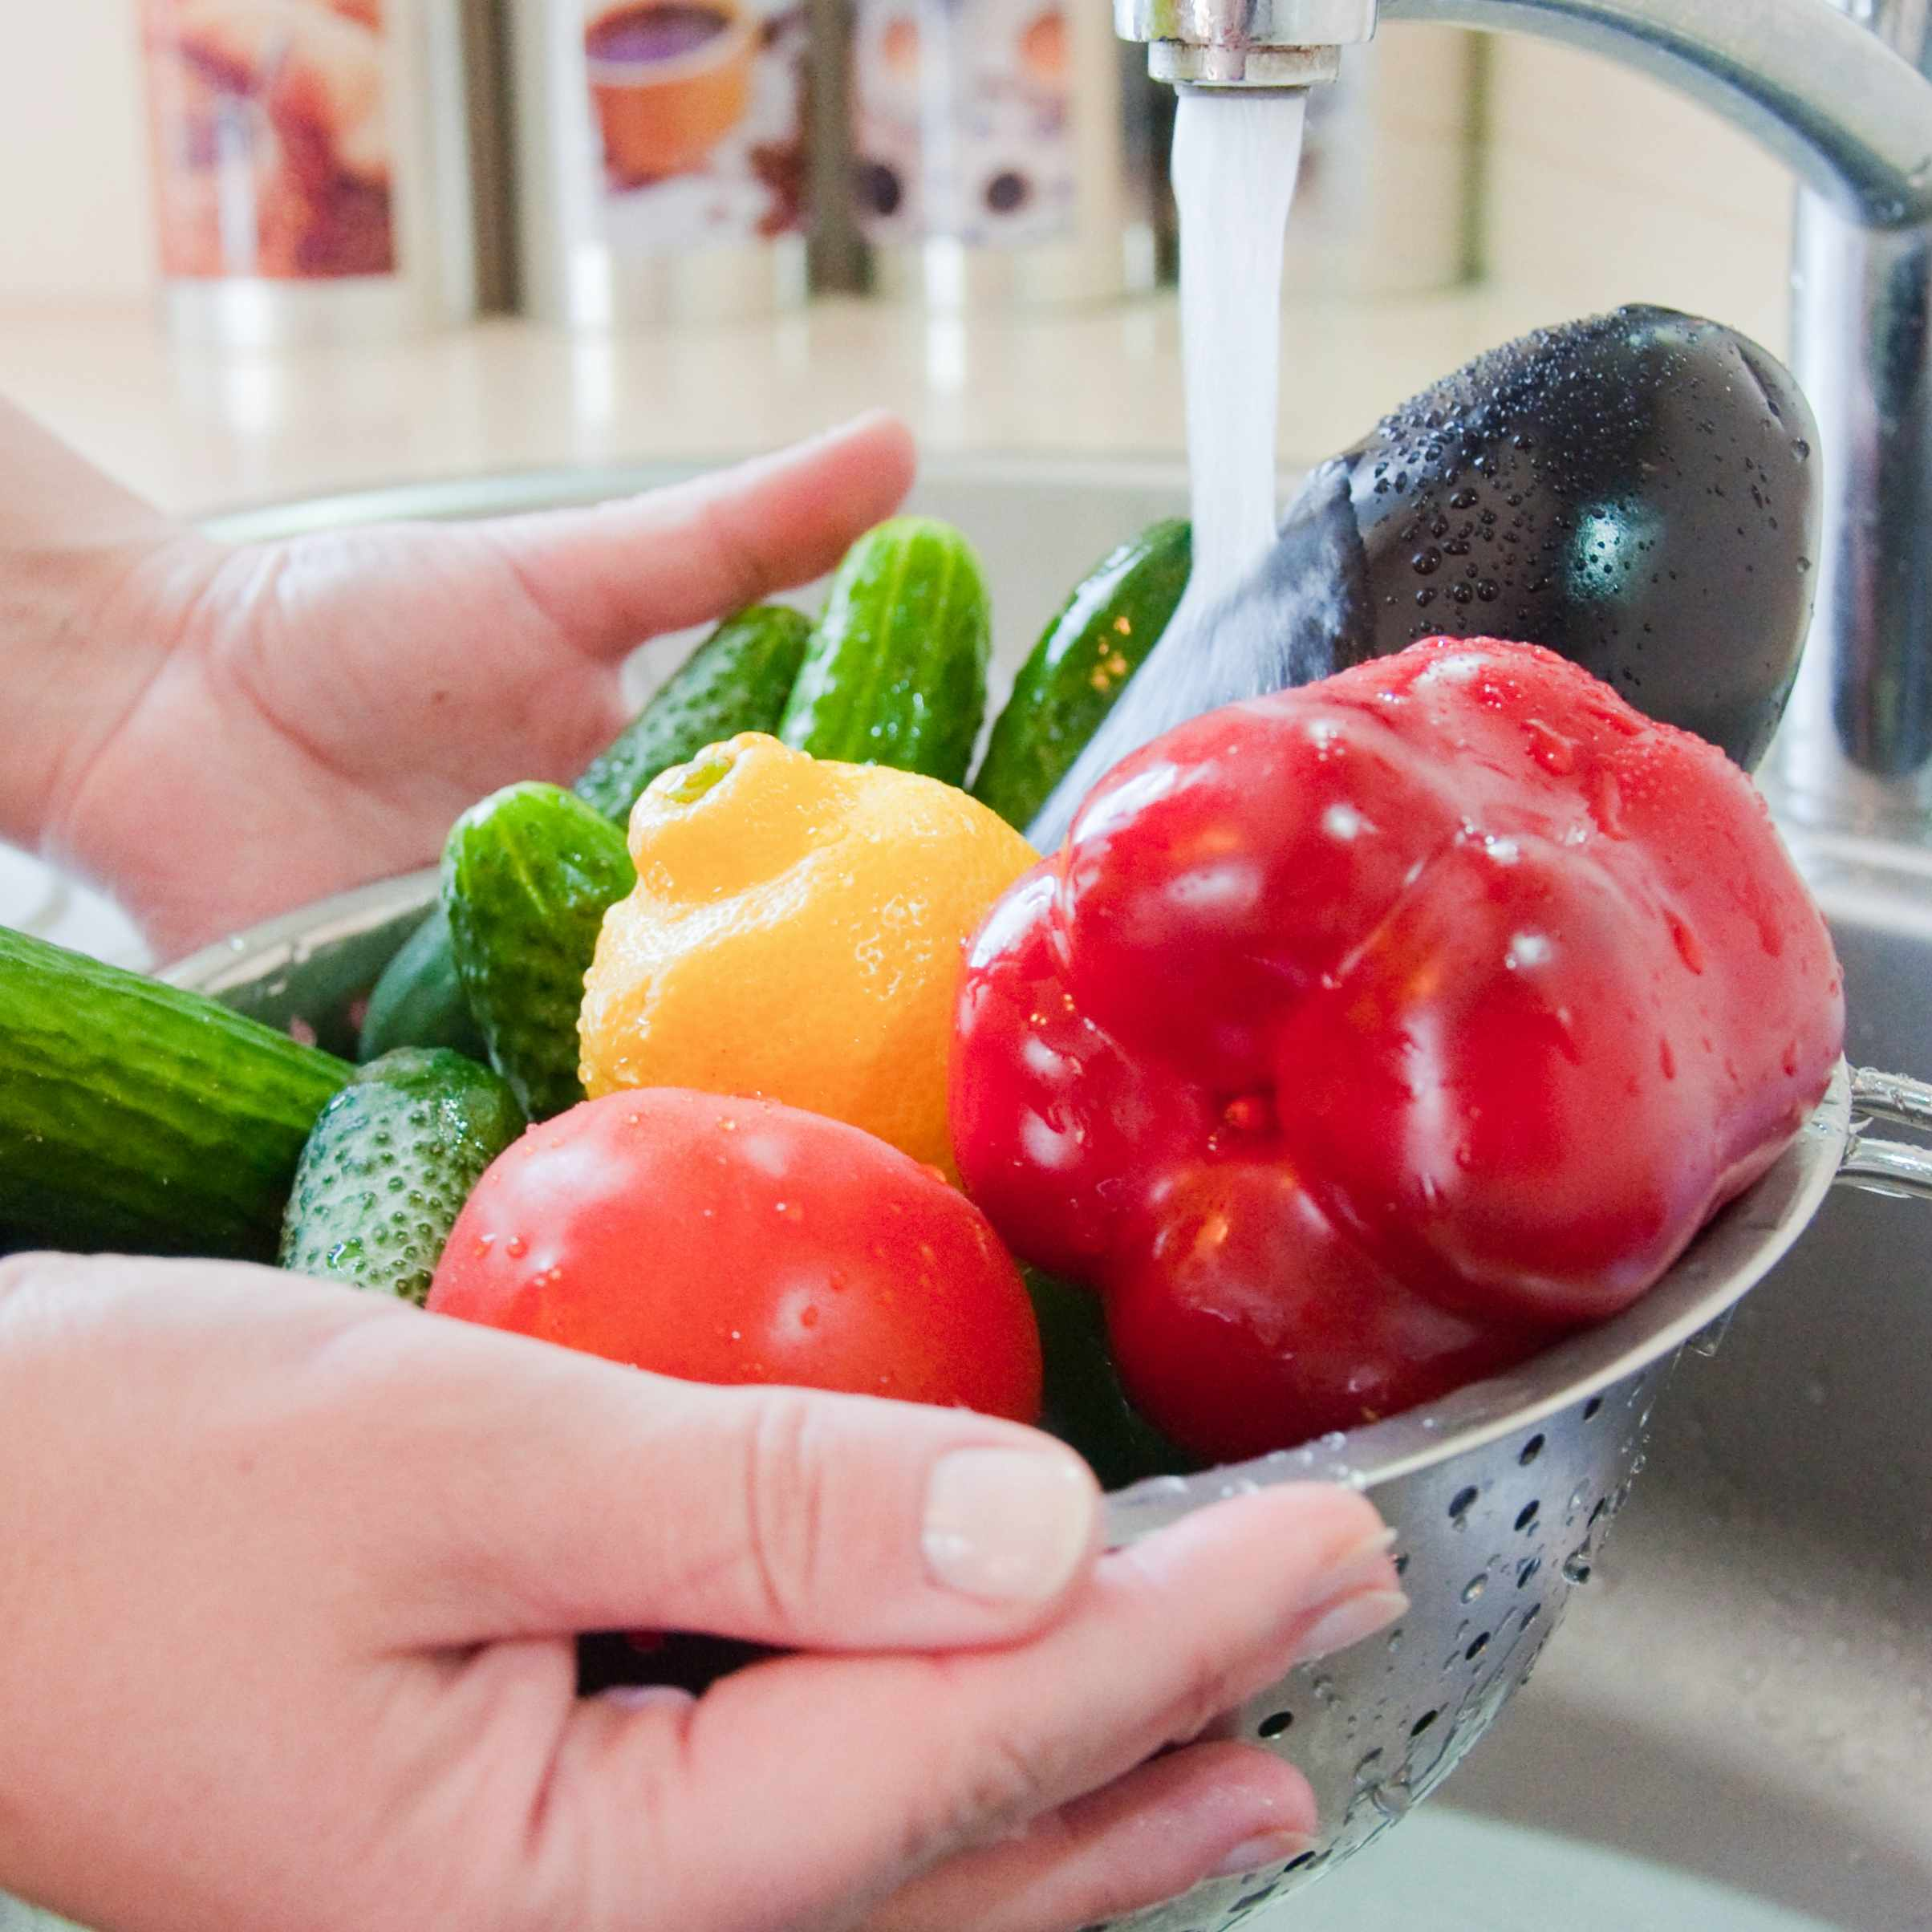 a person washing vegetables and fruits under kitchen water faucet